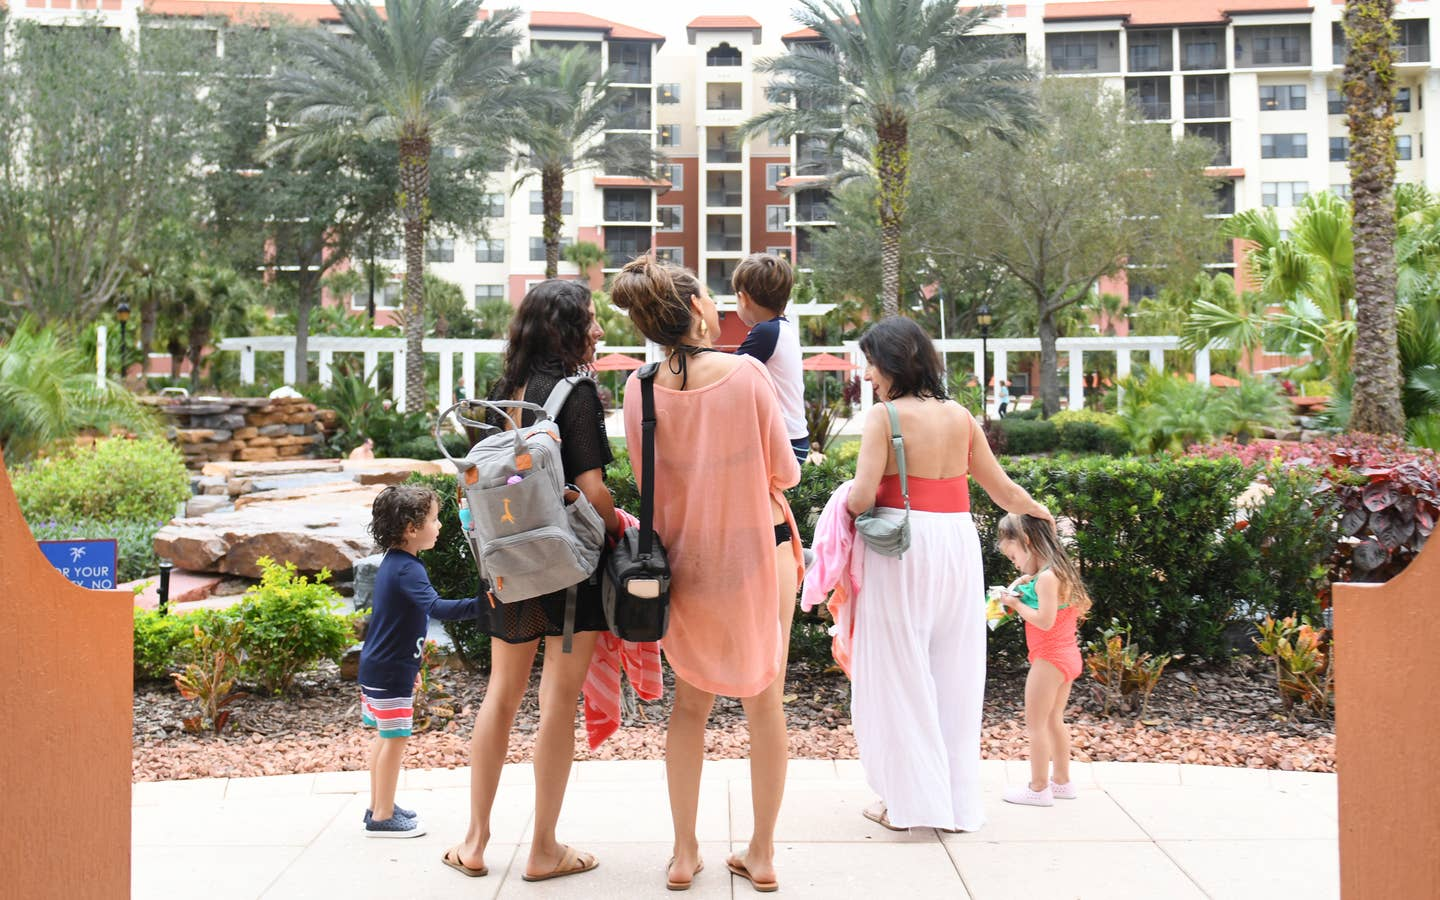 Family standing outside of a large resort building with large palm trees and tropical plants